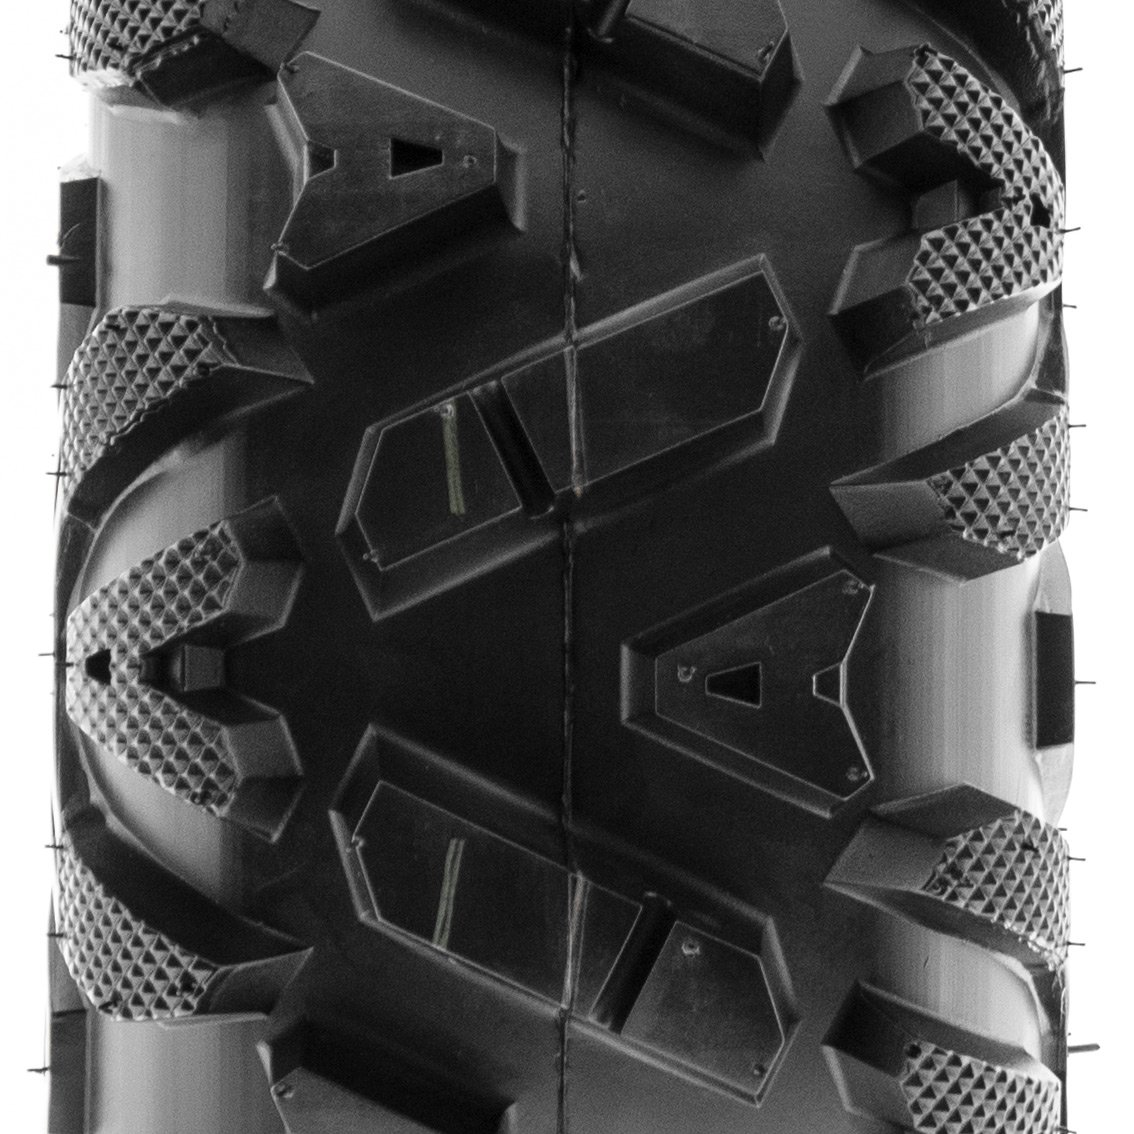 SunF 29x9-14 29x9x14 ATV UTV All Terrain AT Tire 6 PR A033 (Single) by SunF (Image #4)